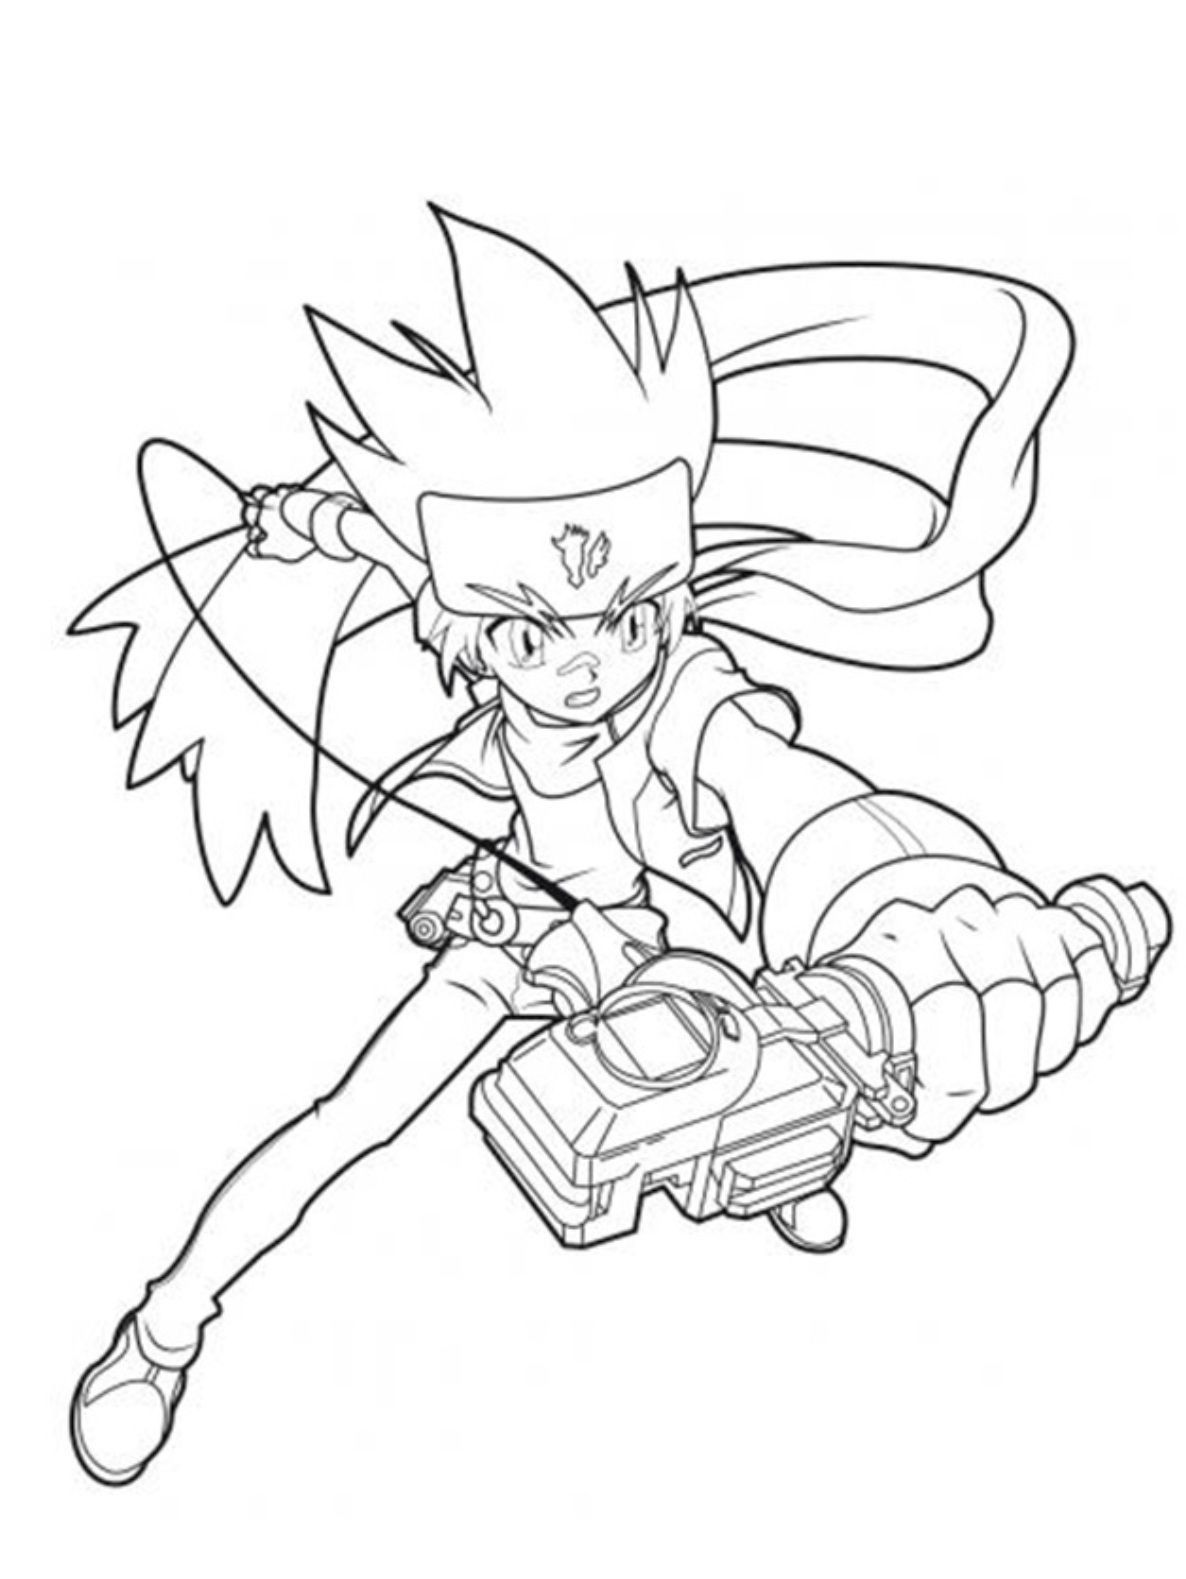 Beyblade Coloring Pages Gingka Hagane Coloring Pages Metal Masters